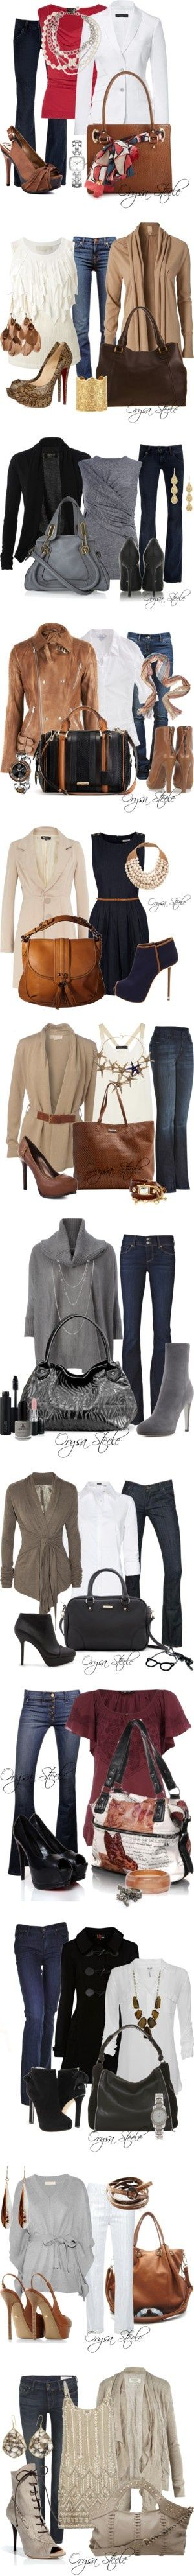 Casual Friday by orysa on Polyvore